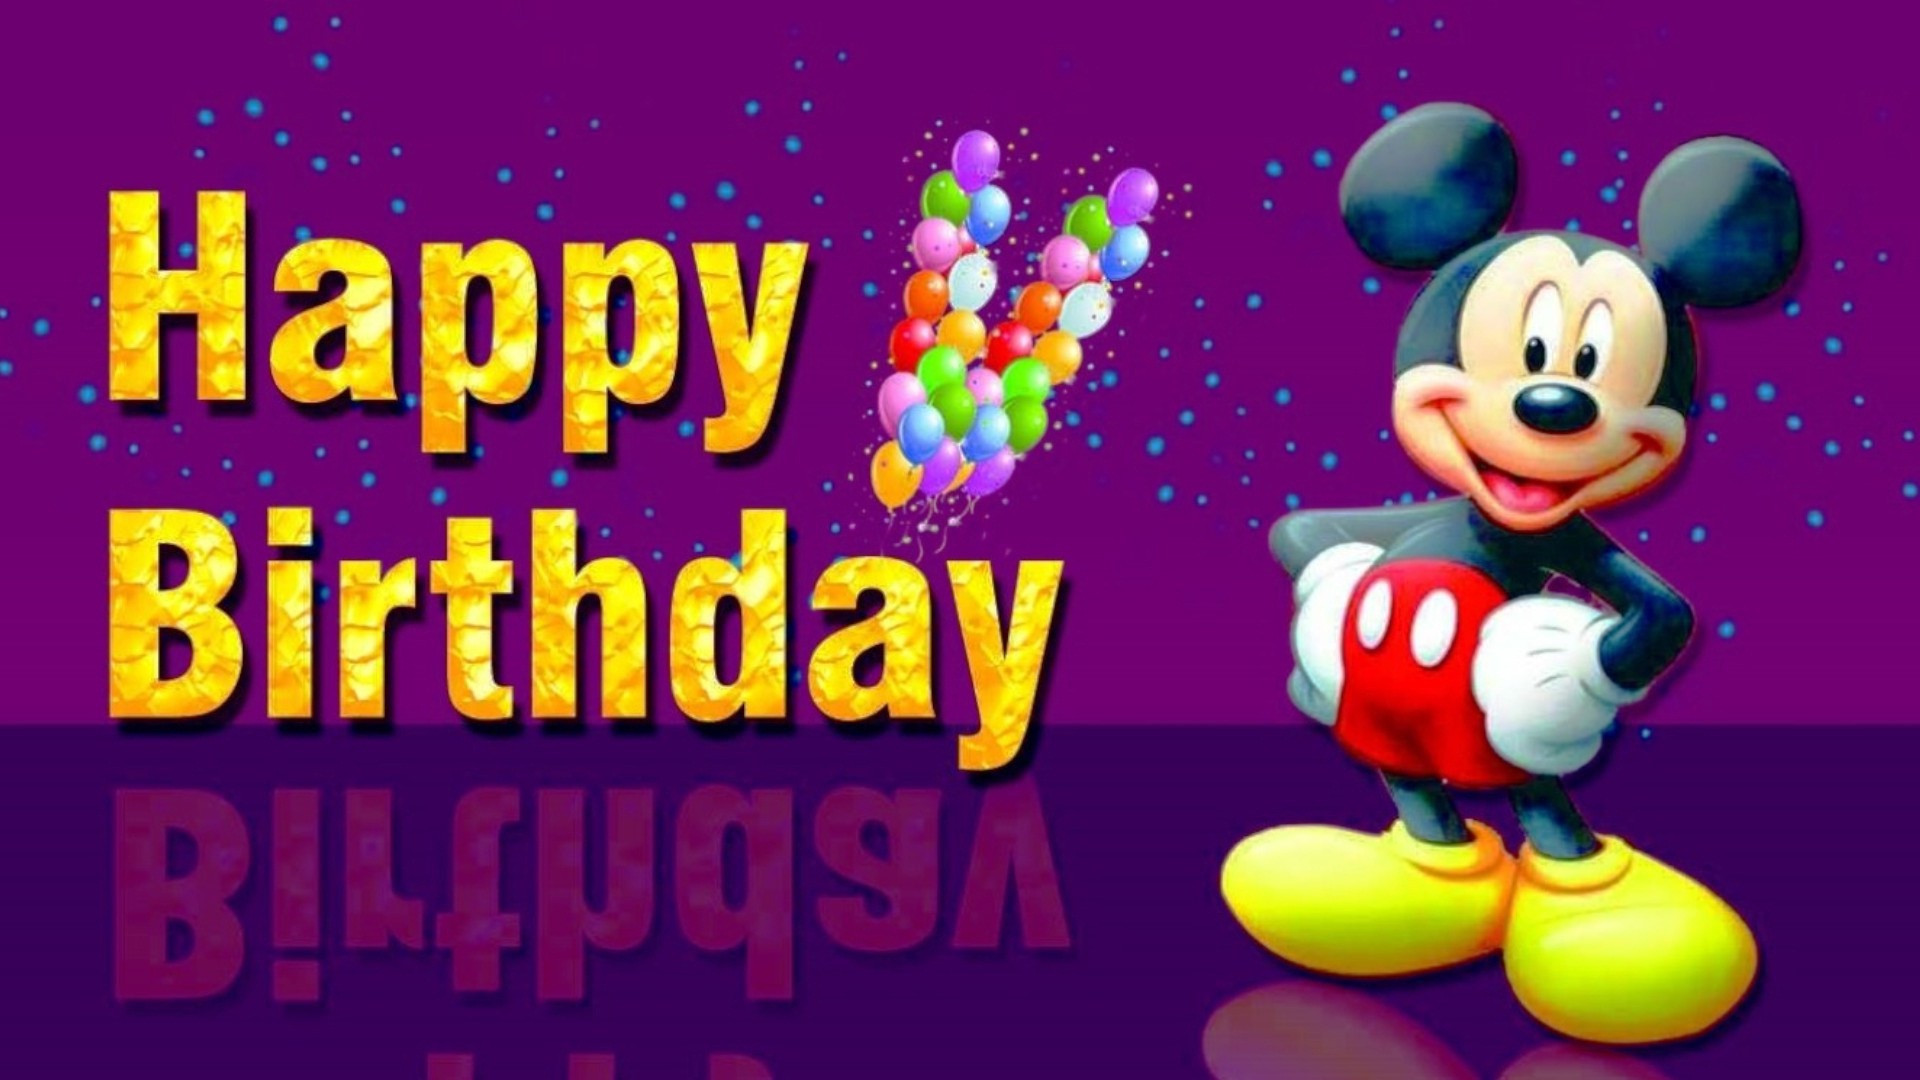 1920x1080 Download Funny Happy Birthday Images Free